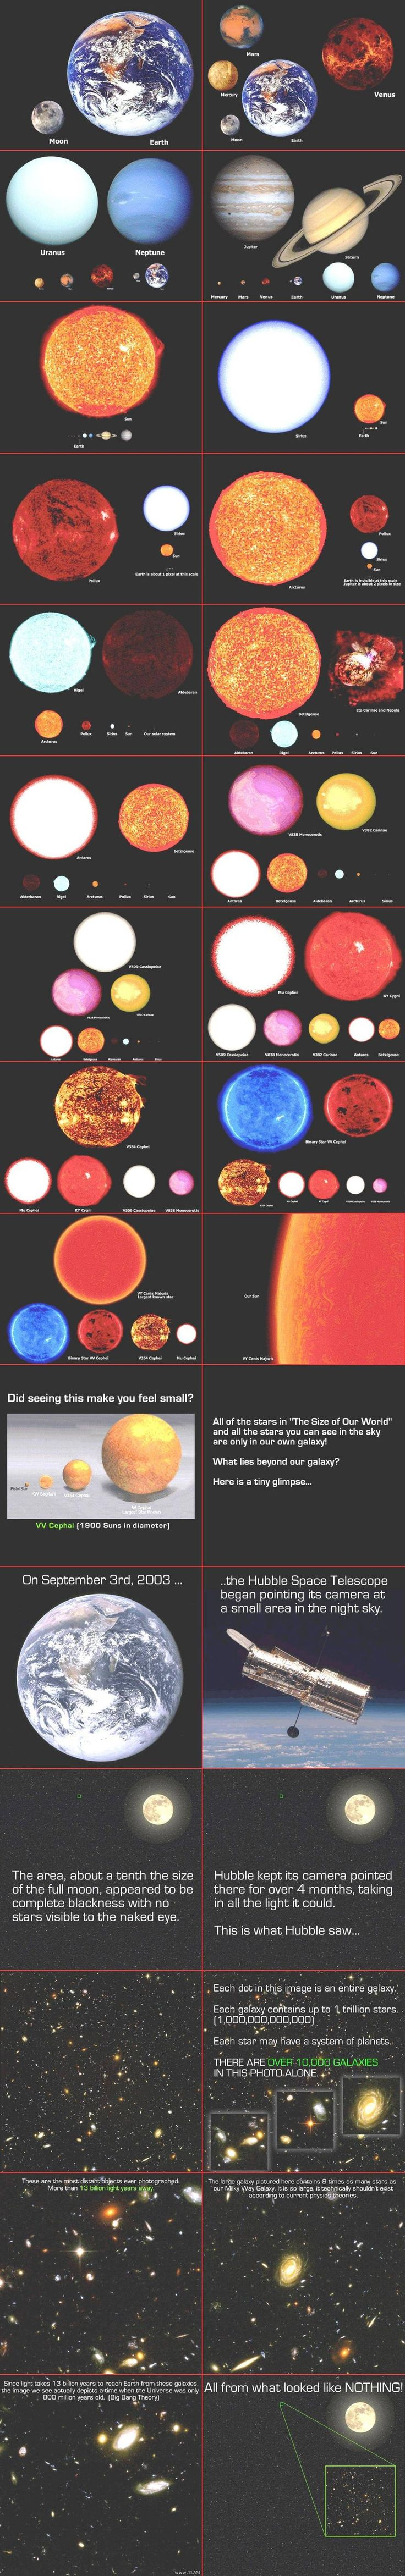 Understanding the size of Earth in comparison to the rest of our solar system - an amazing illustration to visualize the size and scale of our world!